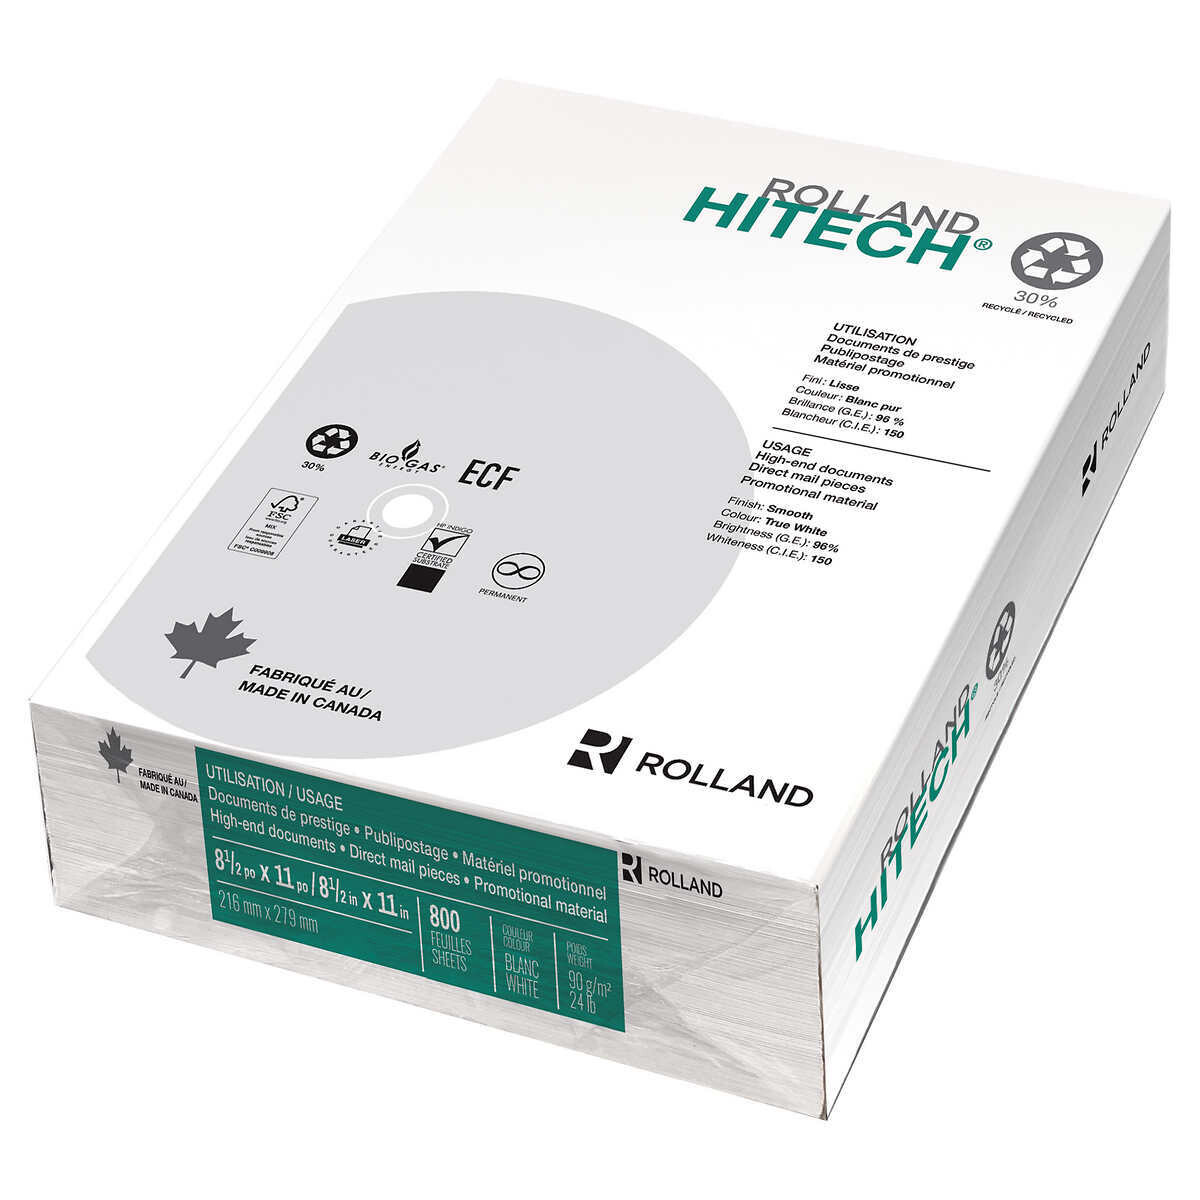 Rolland Hitech Copy Paper 30% Recycled - 8.5 in × 11 in, 800 Sheets